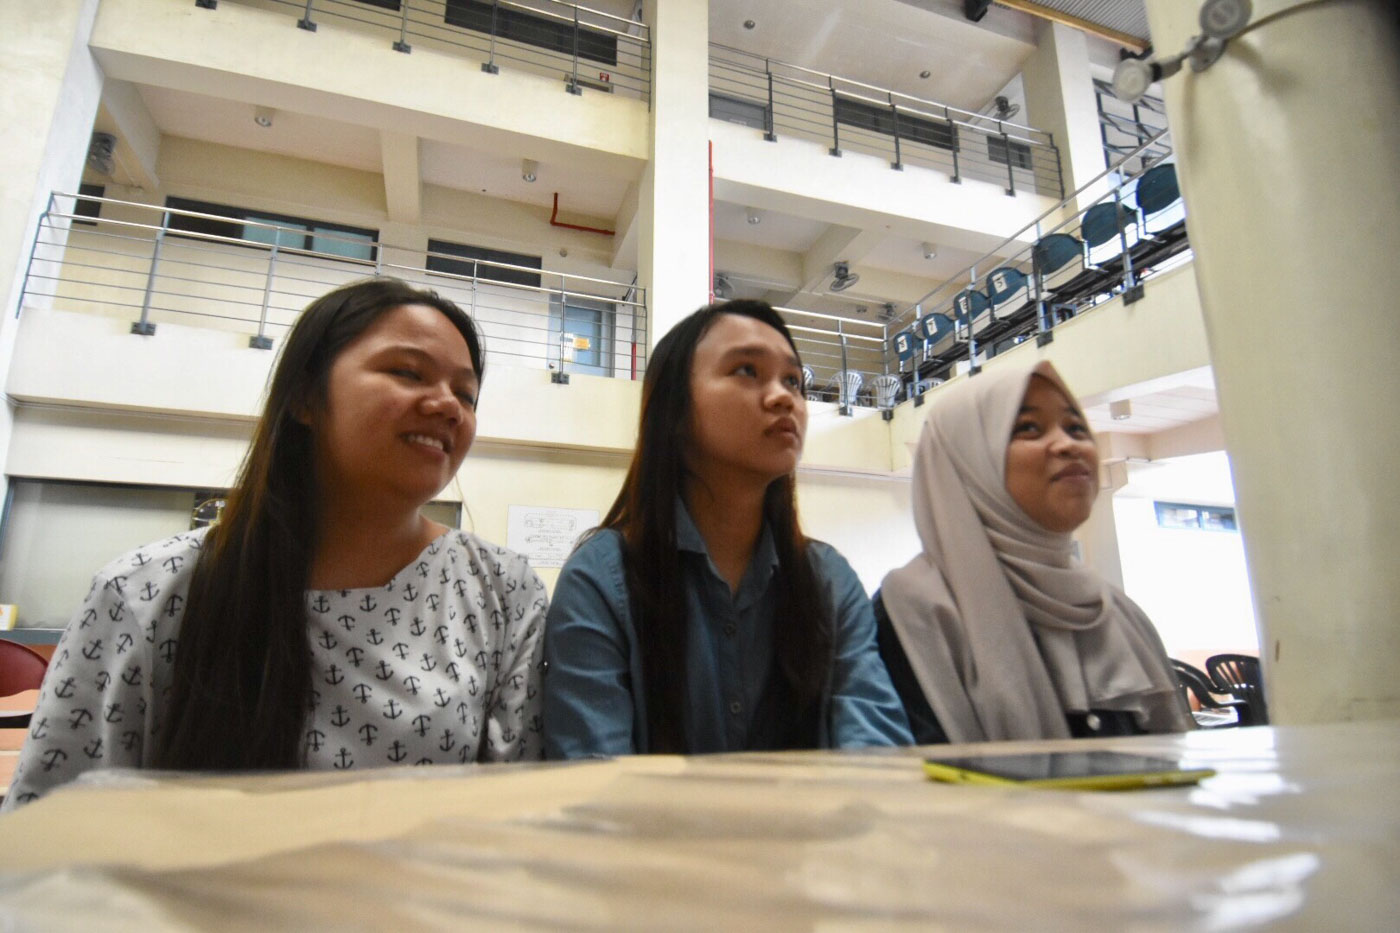 DETERMINED. Gumela, Caalaman, and Bahasuan (left to right) travelled all the way from Zamboanga City to take the UPCAT. All Photos by Angie de Silva/Rappler